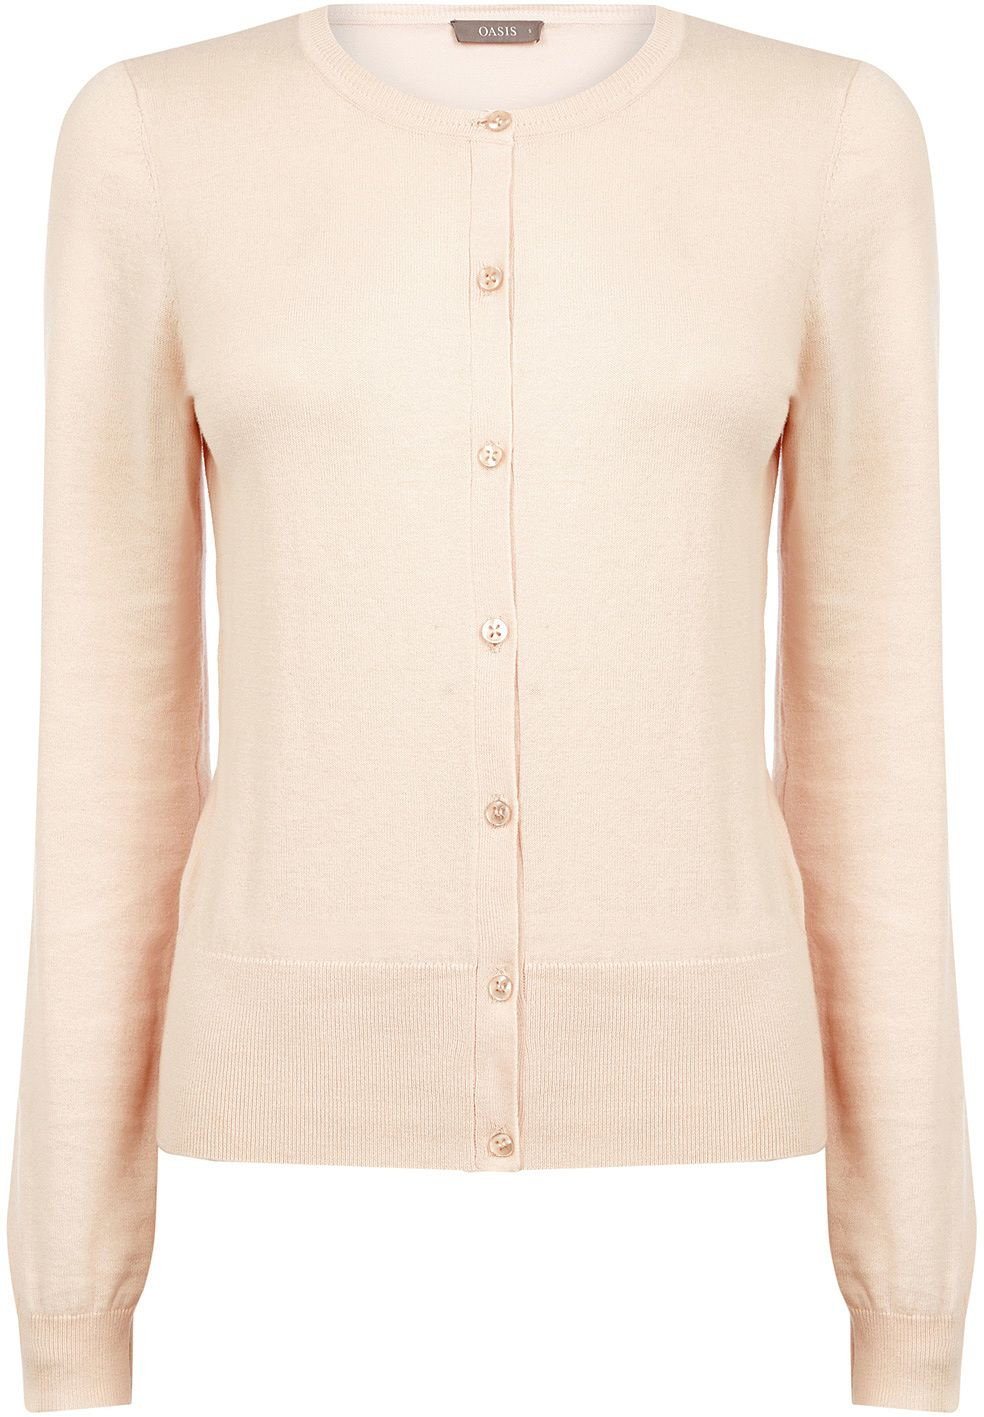 Womens light peach crew cardi from Oasis - £25 at ClothingByColour ...